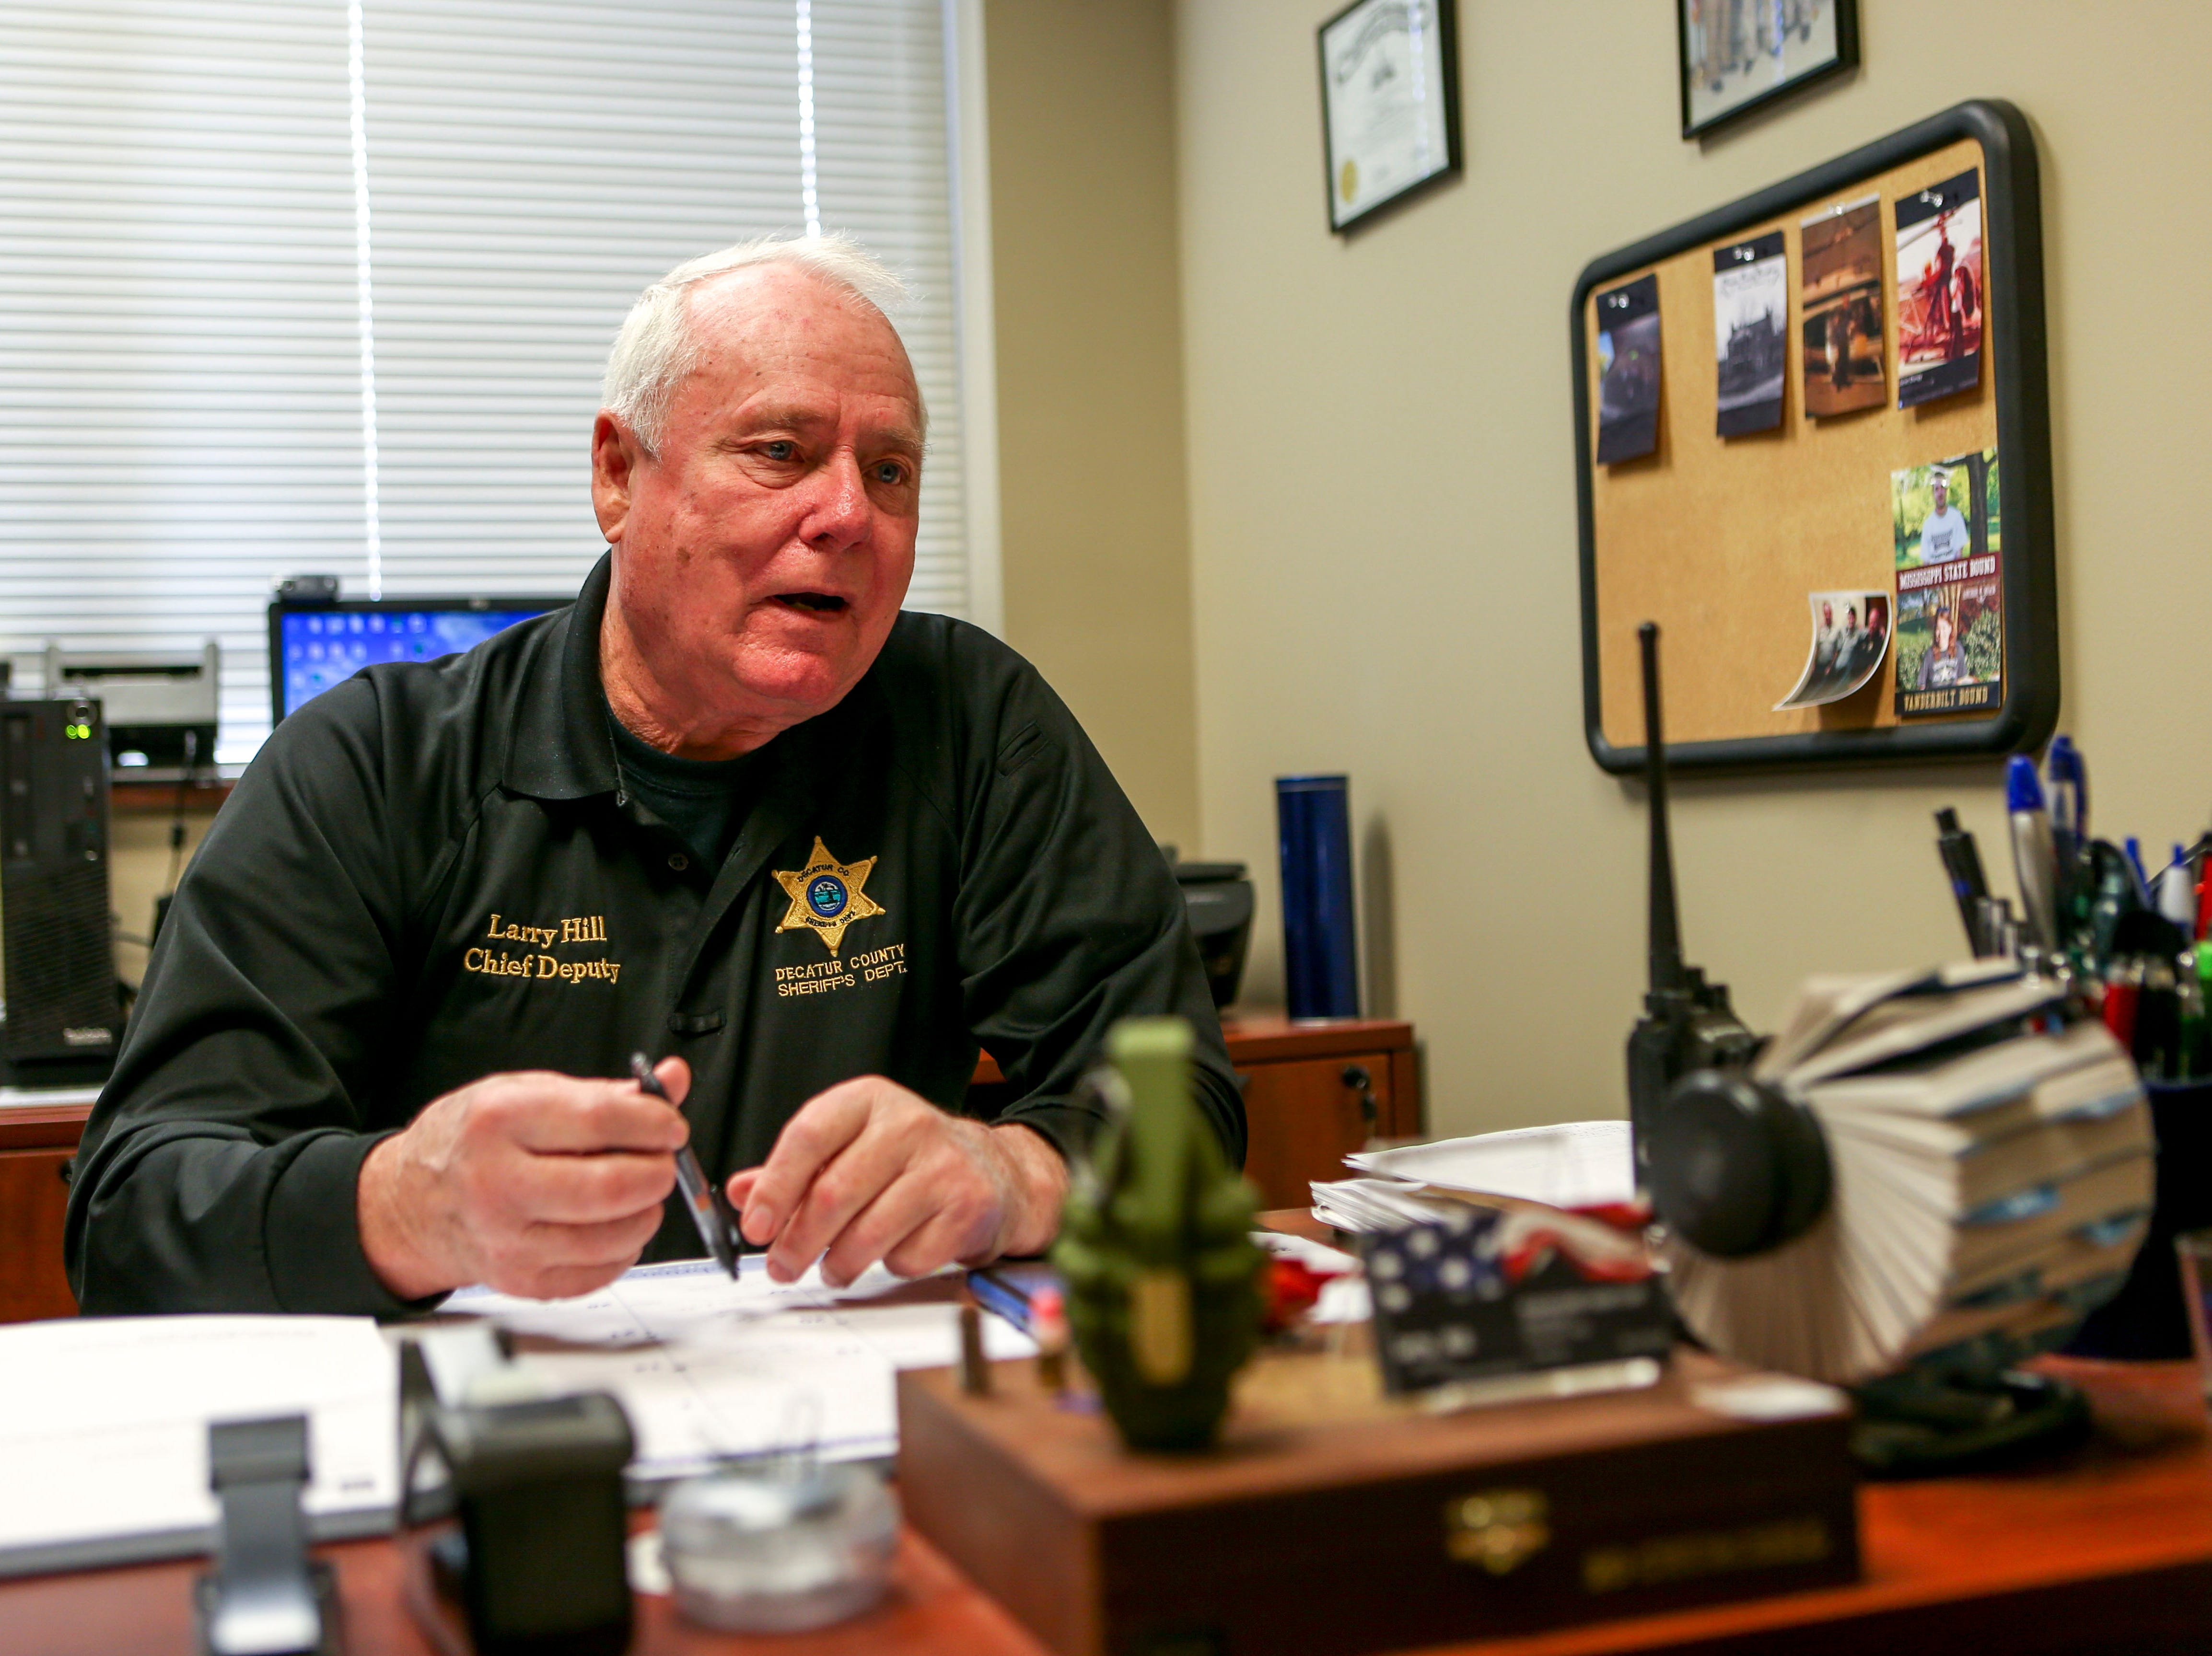 Chief Deputy Larry Hill of Decatur County Sheriffs Department speaks with a Jackson Sun reporter at Decatur County Sheriff's Office, in Decaturville, Tenn., on Monday, Feb. 25, 2019.